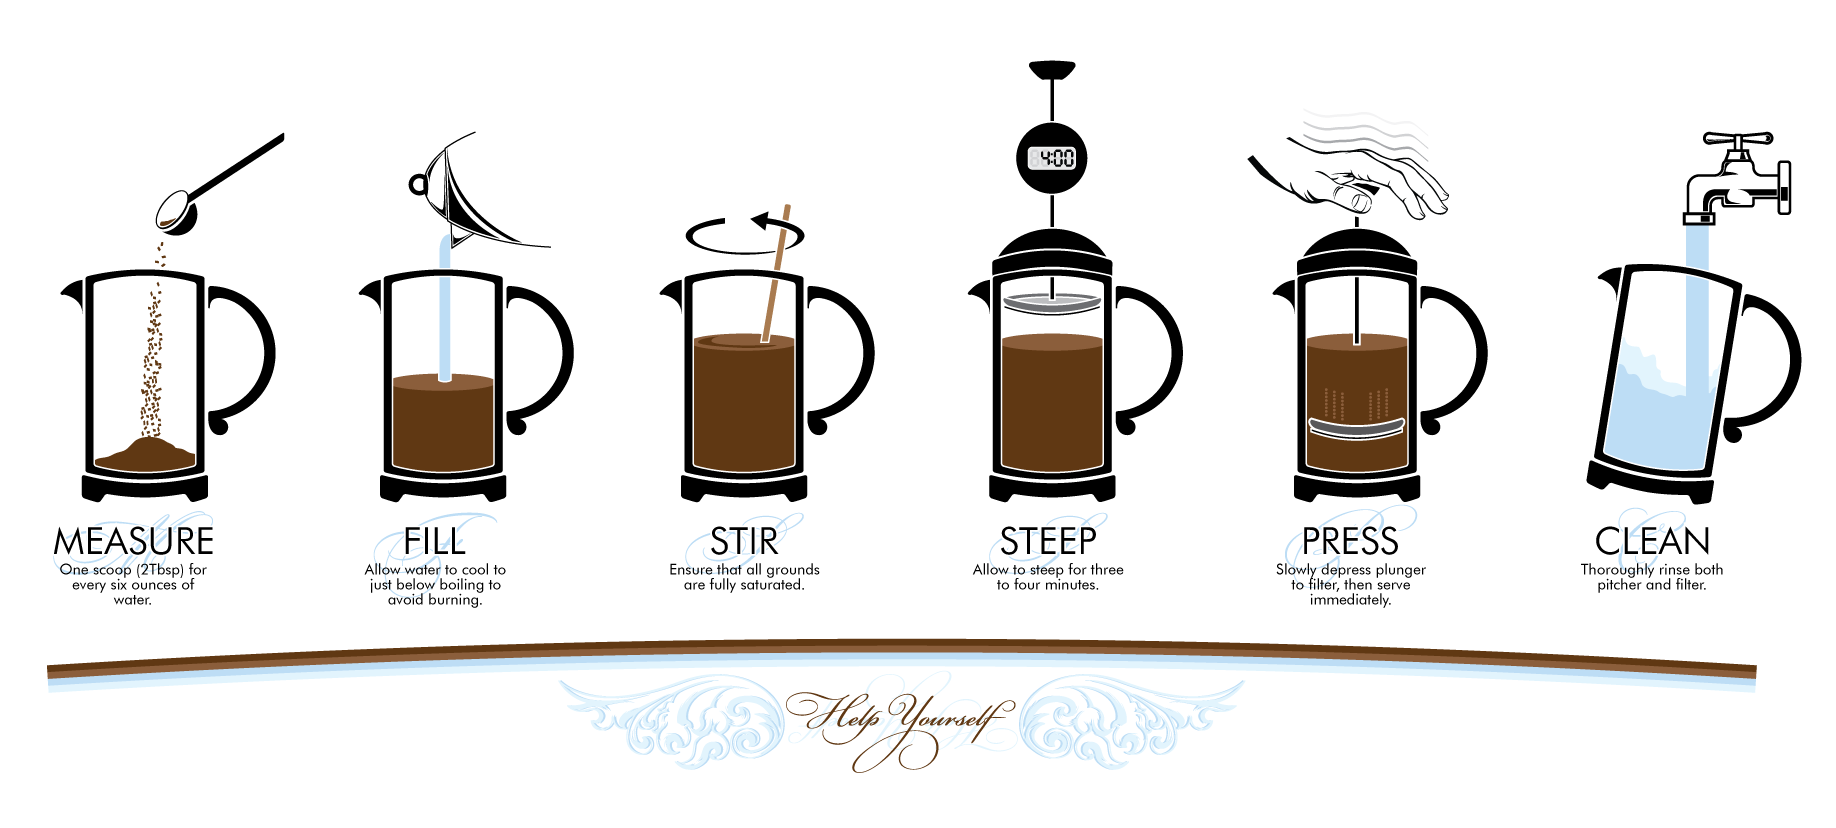 French Press Coffee Maker How To Clean : French Press